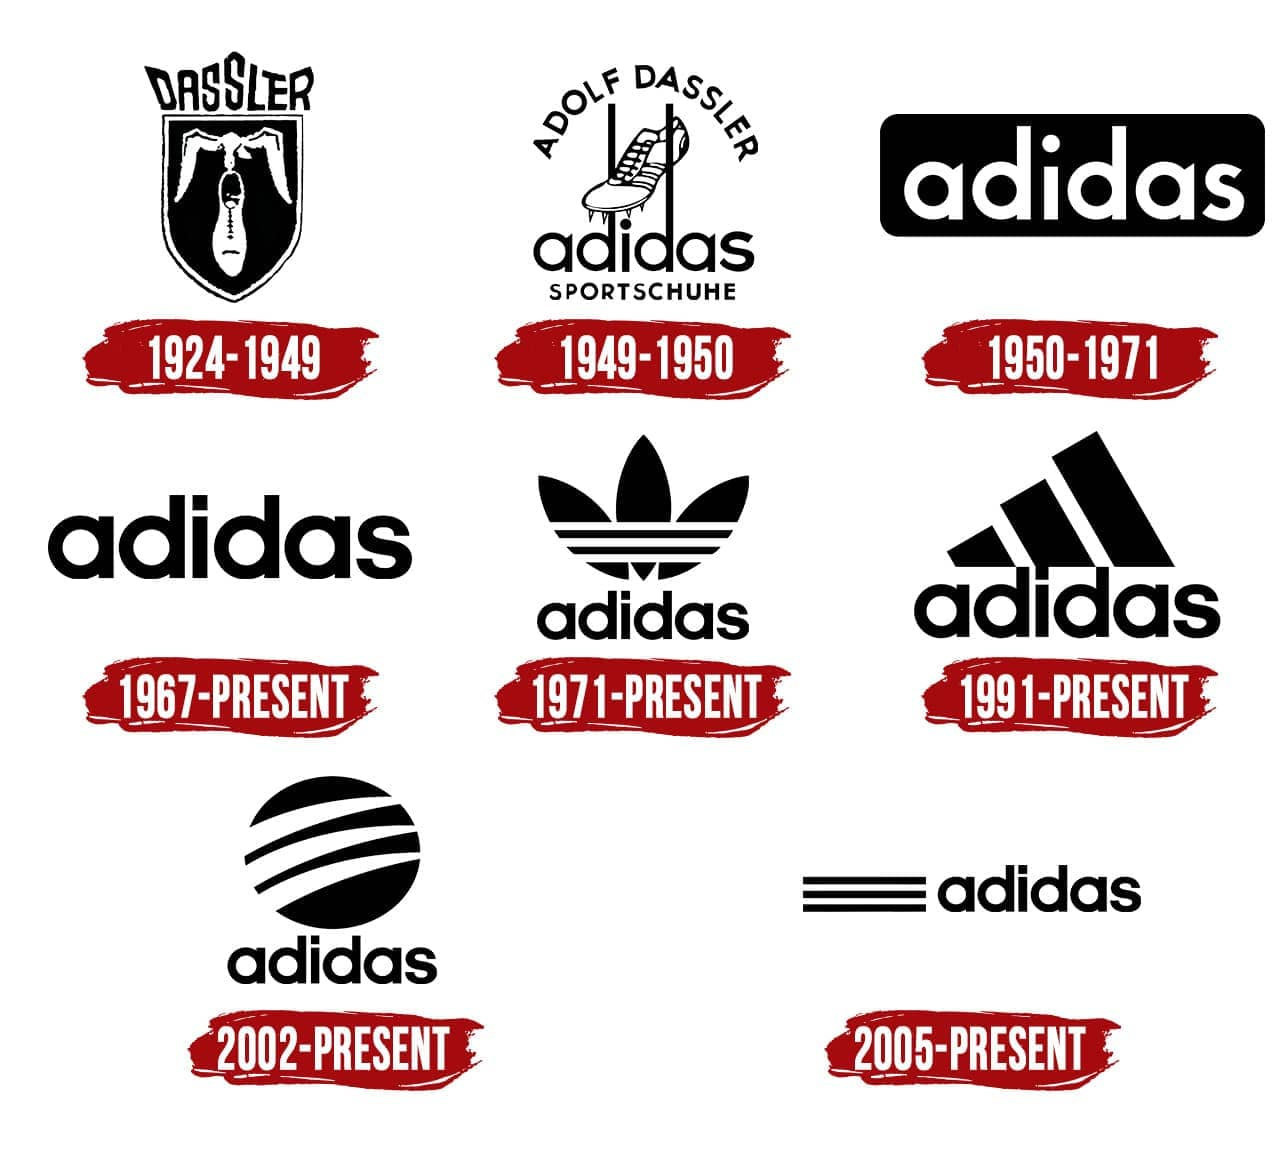 raqueta Mentor carrera  Adidas Logo History | The most famous brands and company logos in the world